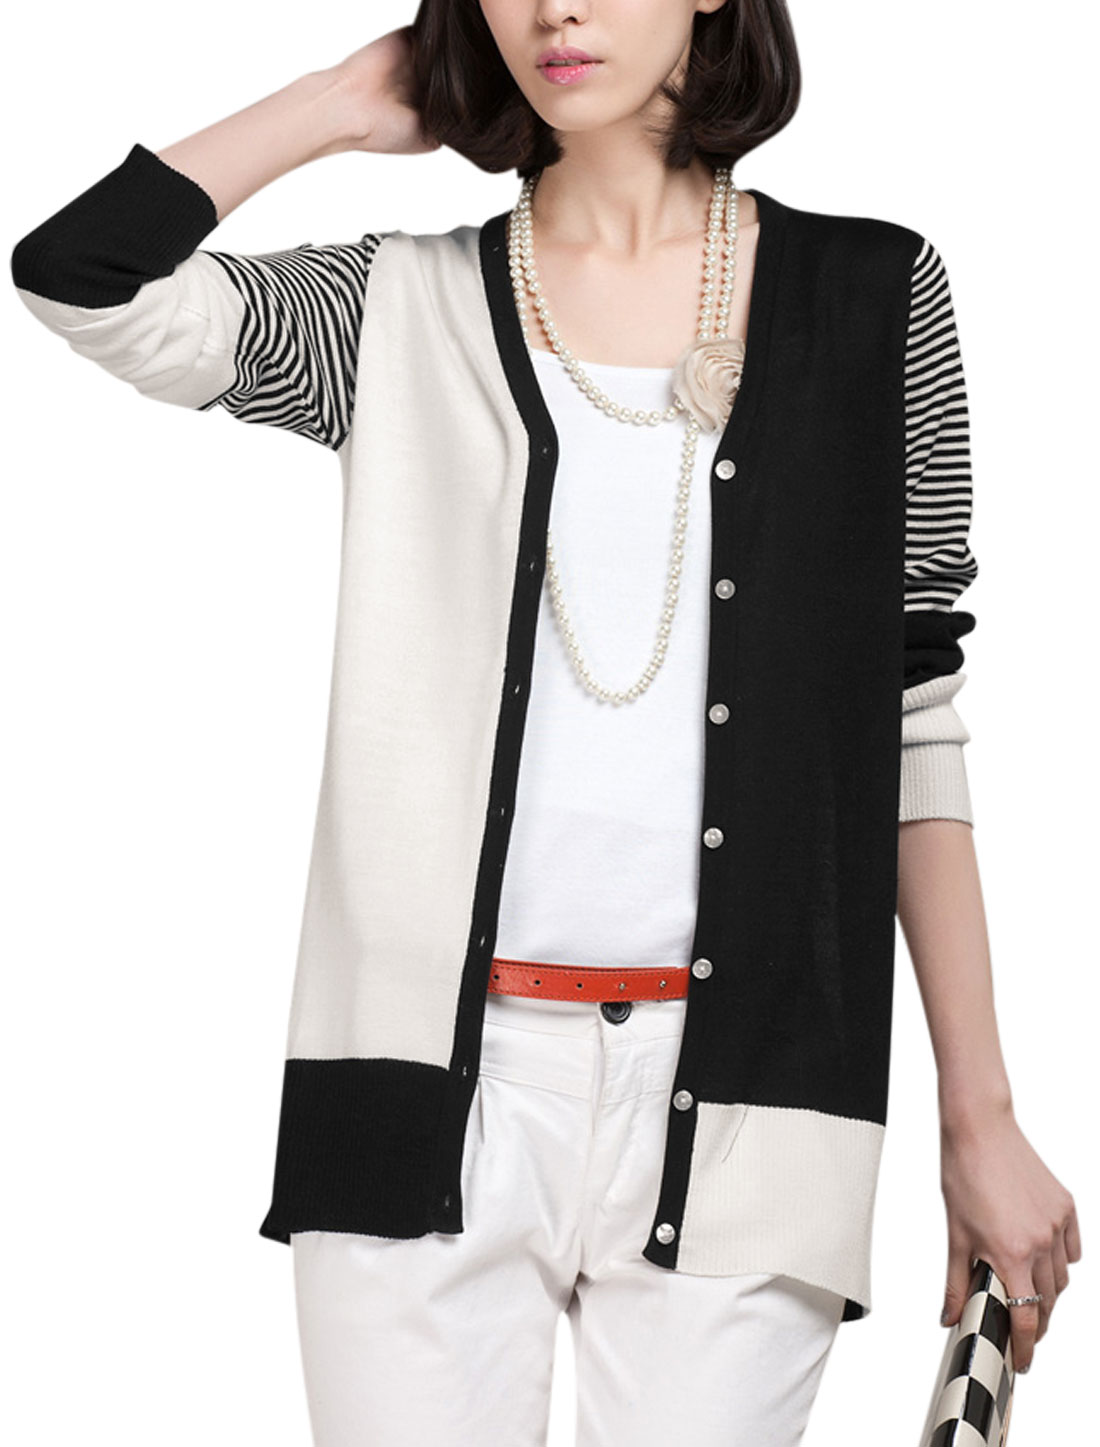 Lady's Korean Style Contrast Color Ribbed Casual Cardigan Black White XS